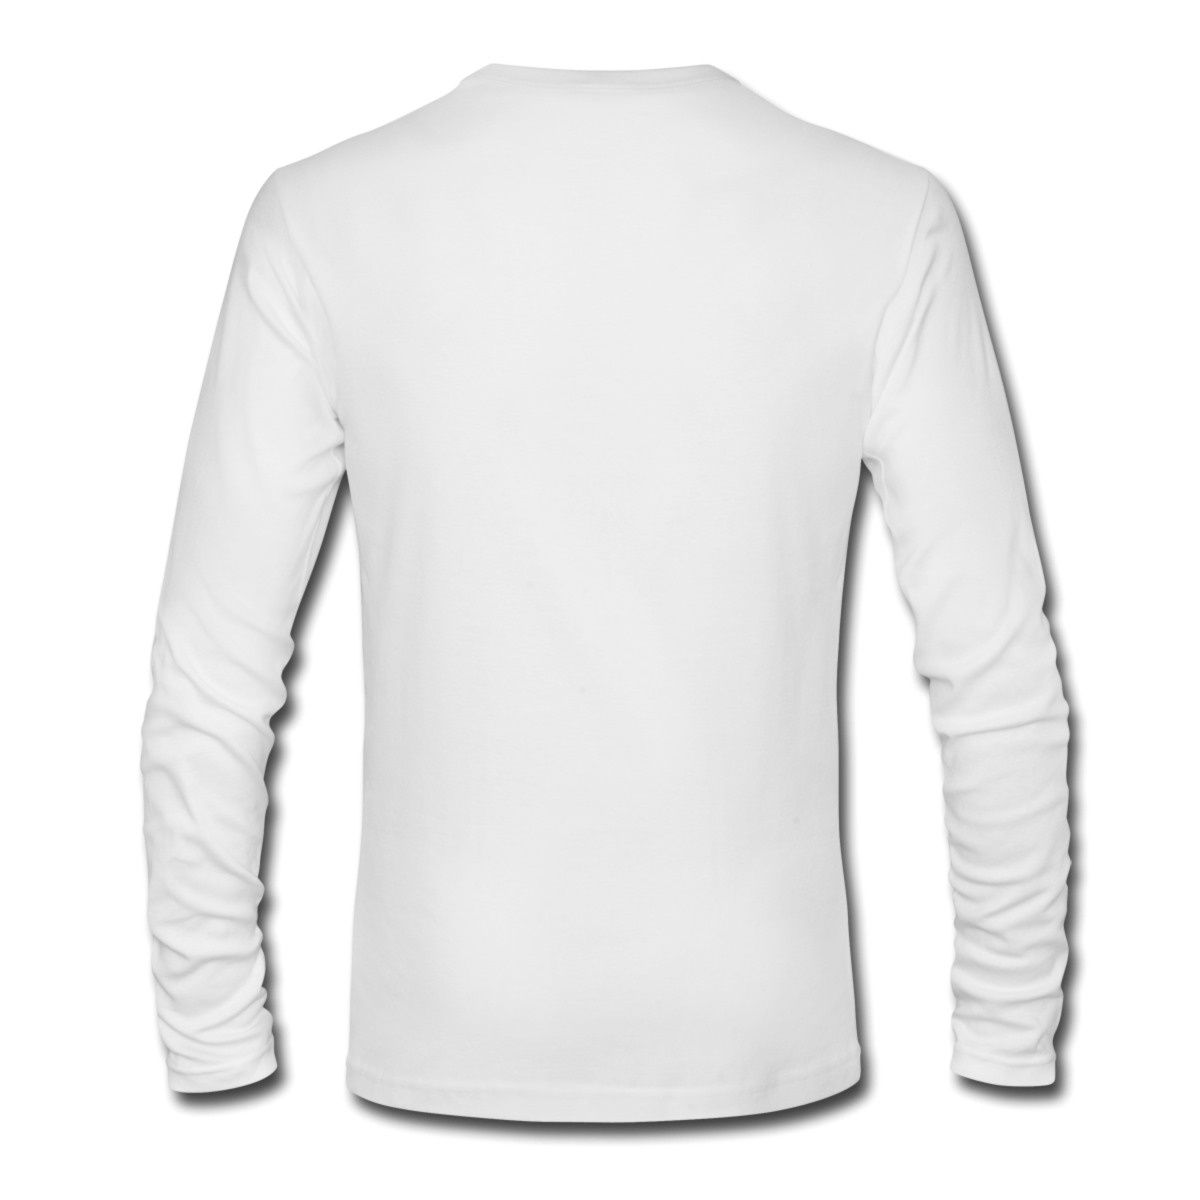 Plain white t shirt png clipart best for The best plain white t shirts